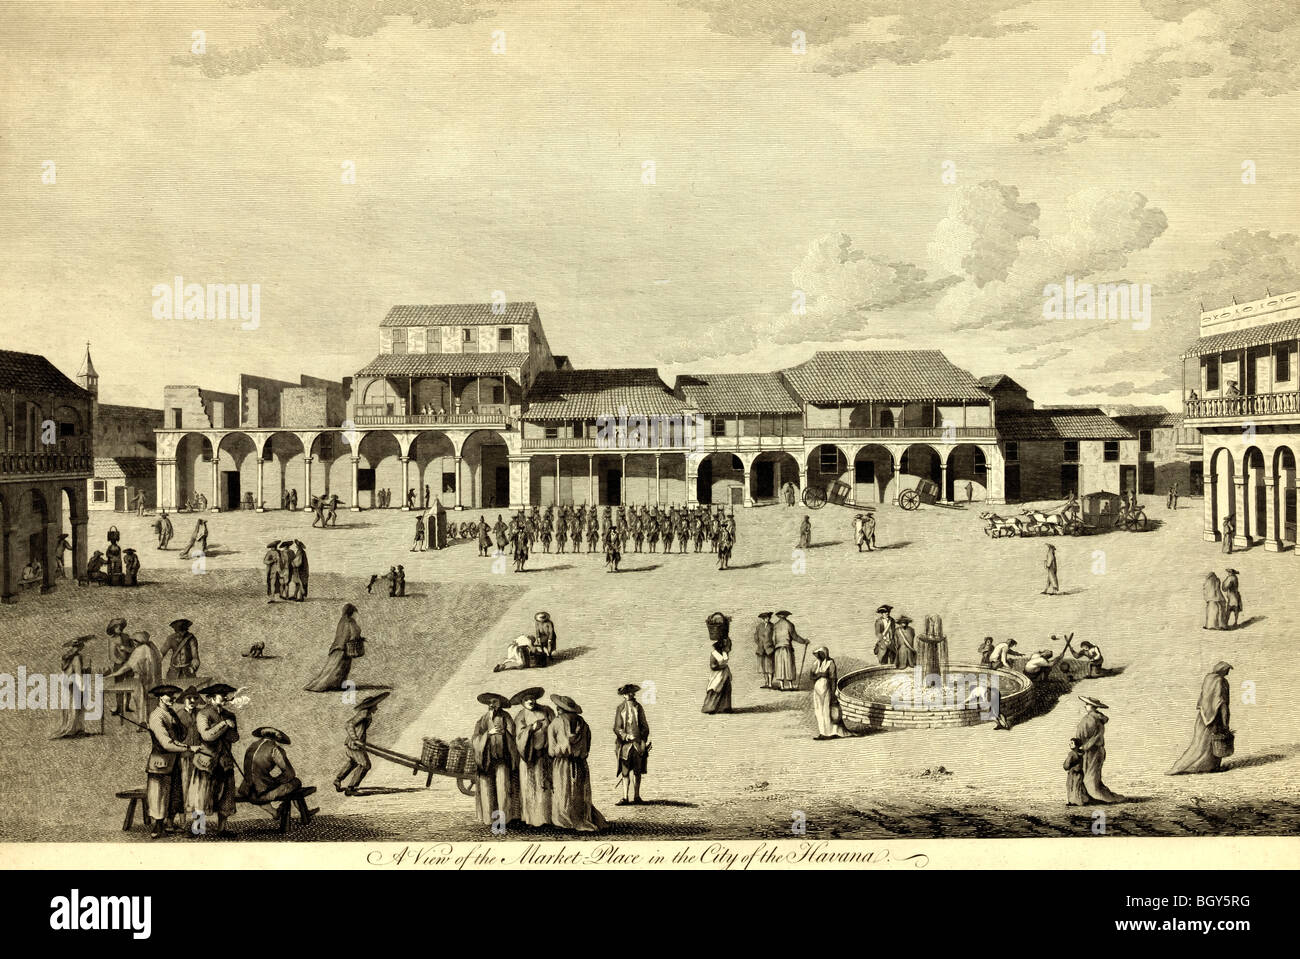 A view of the market place in the city of the Havana, Cuba, circa 1768 - Stock Image